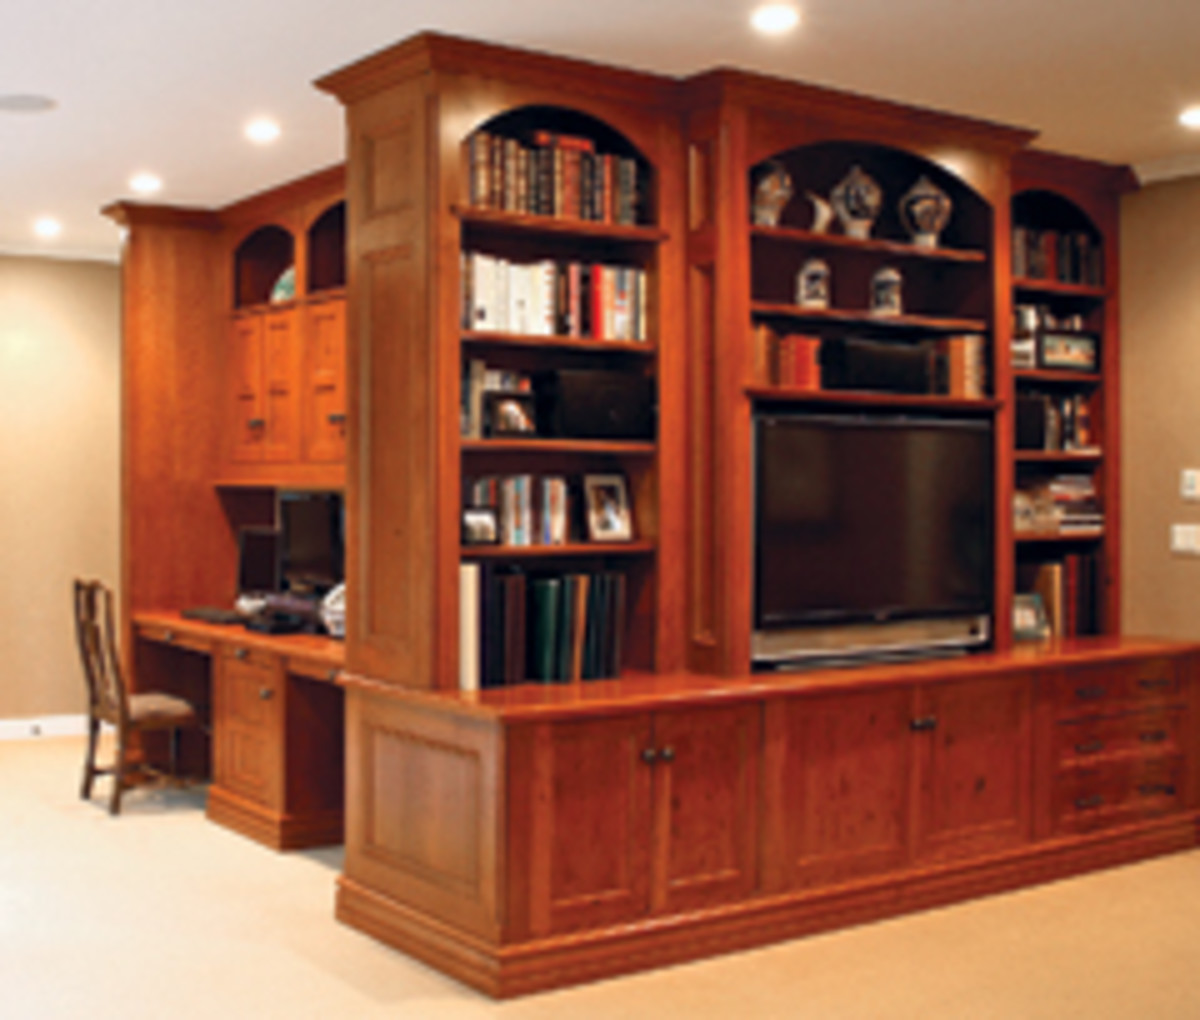 Hudson Cabinetmaking's primary products are built-ins and kitchens.